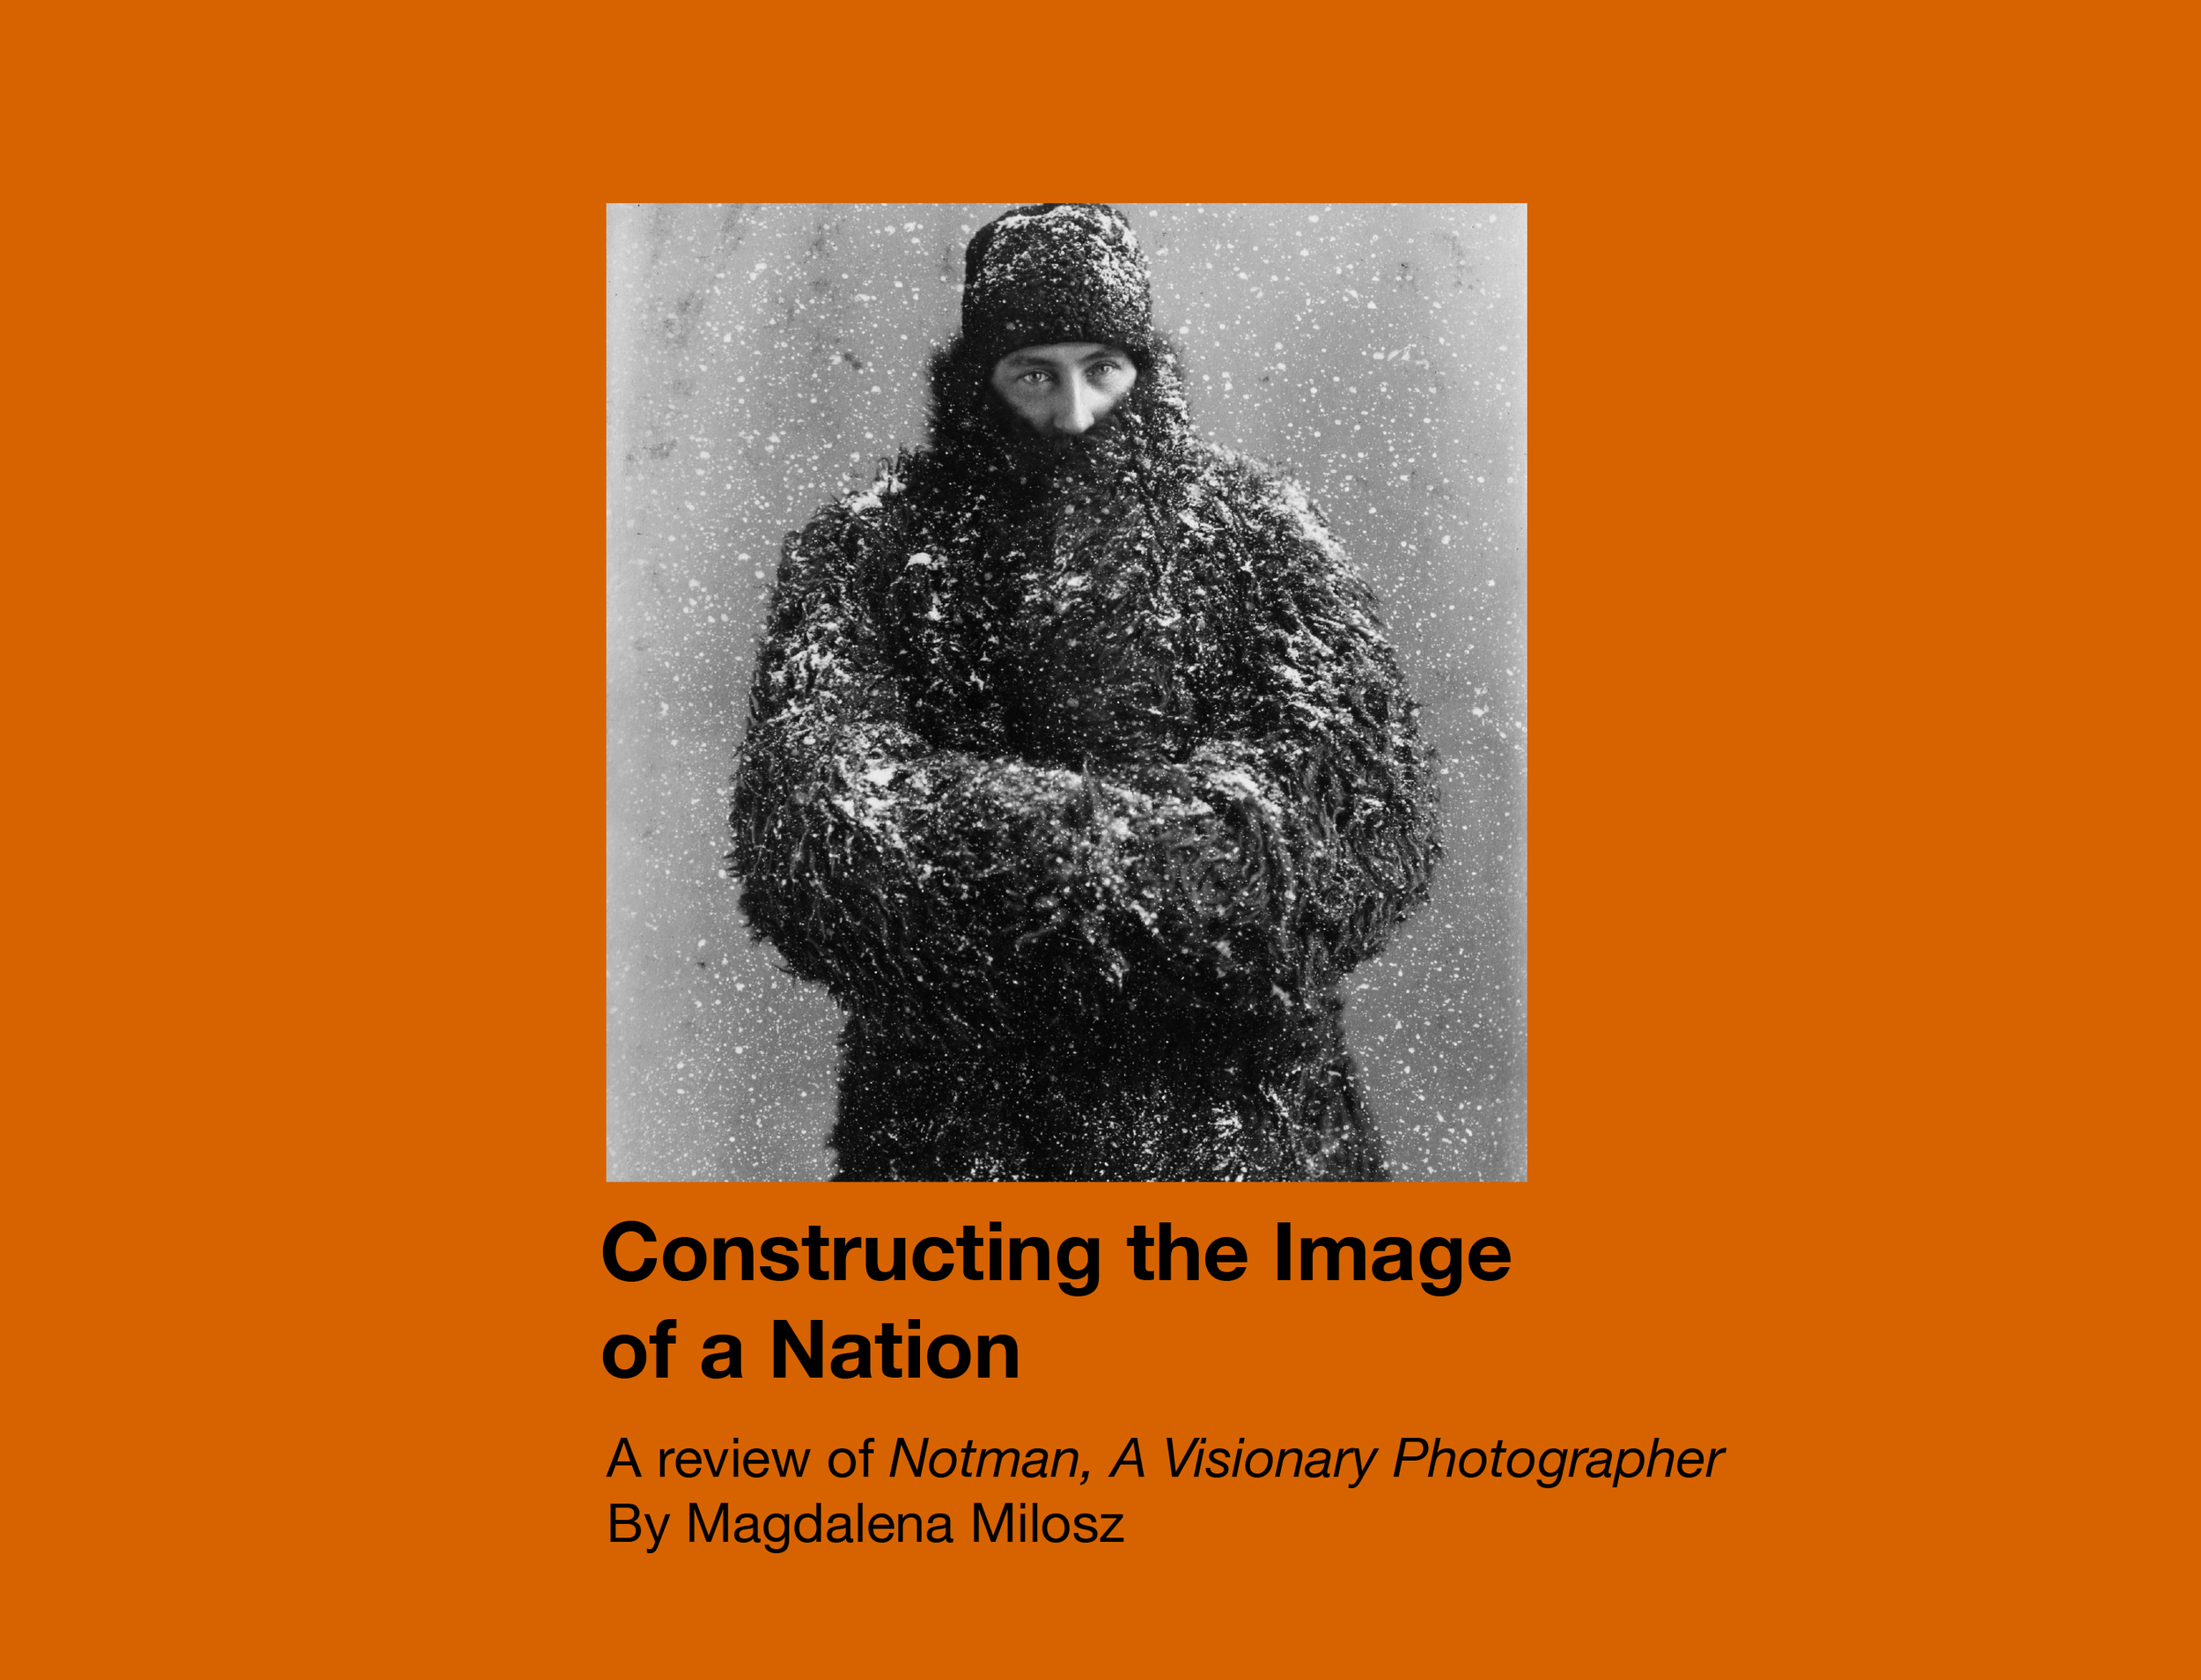 Constructing the Image of a Nation